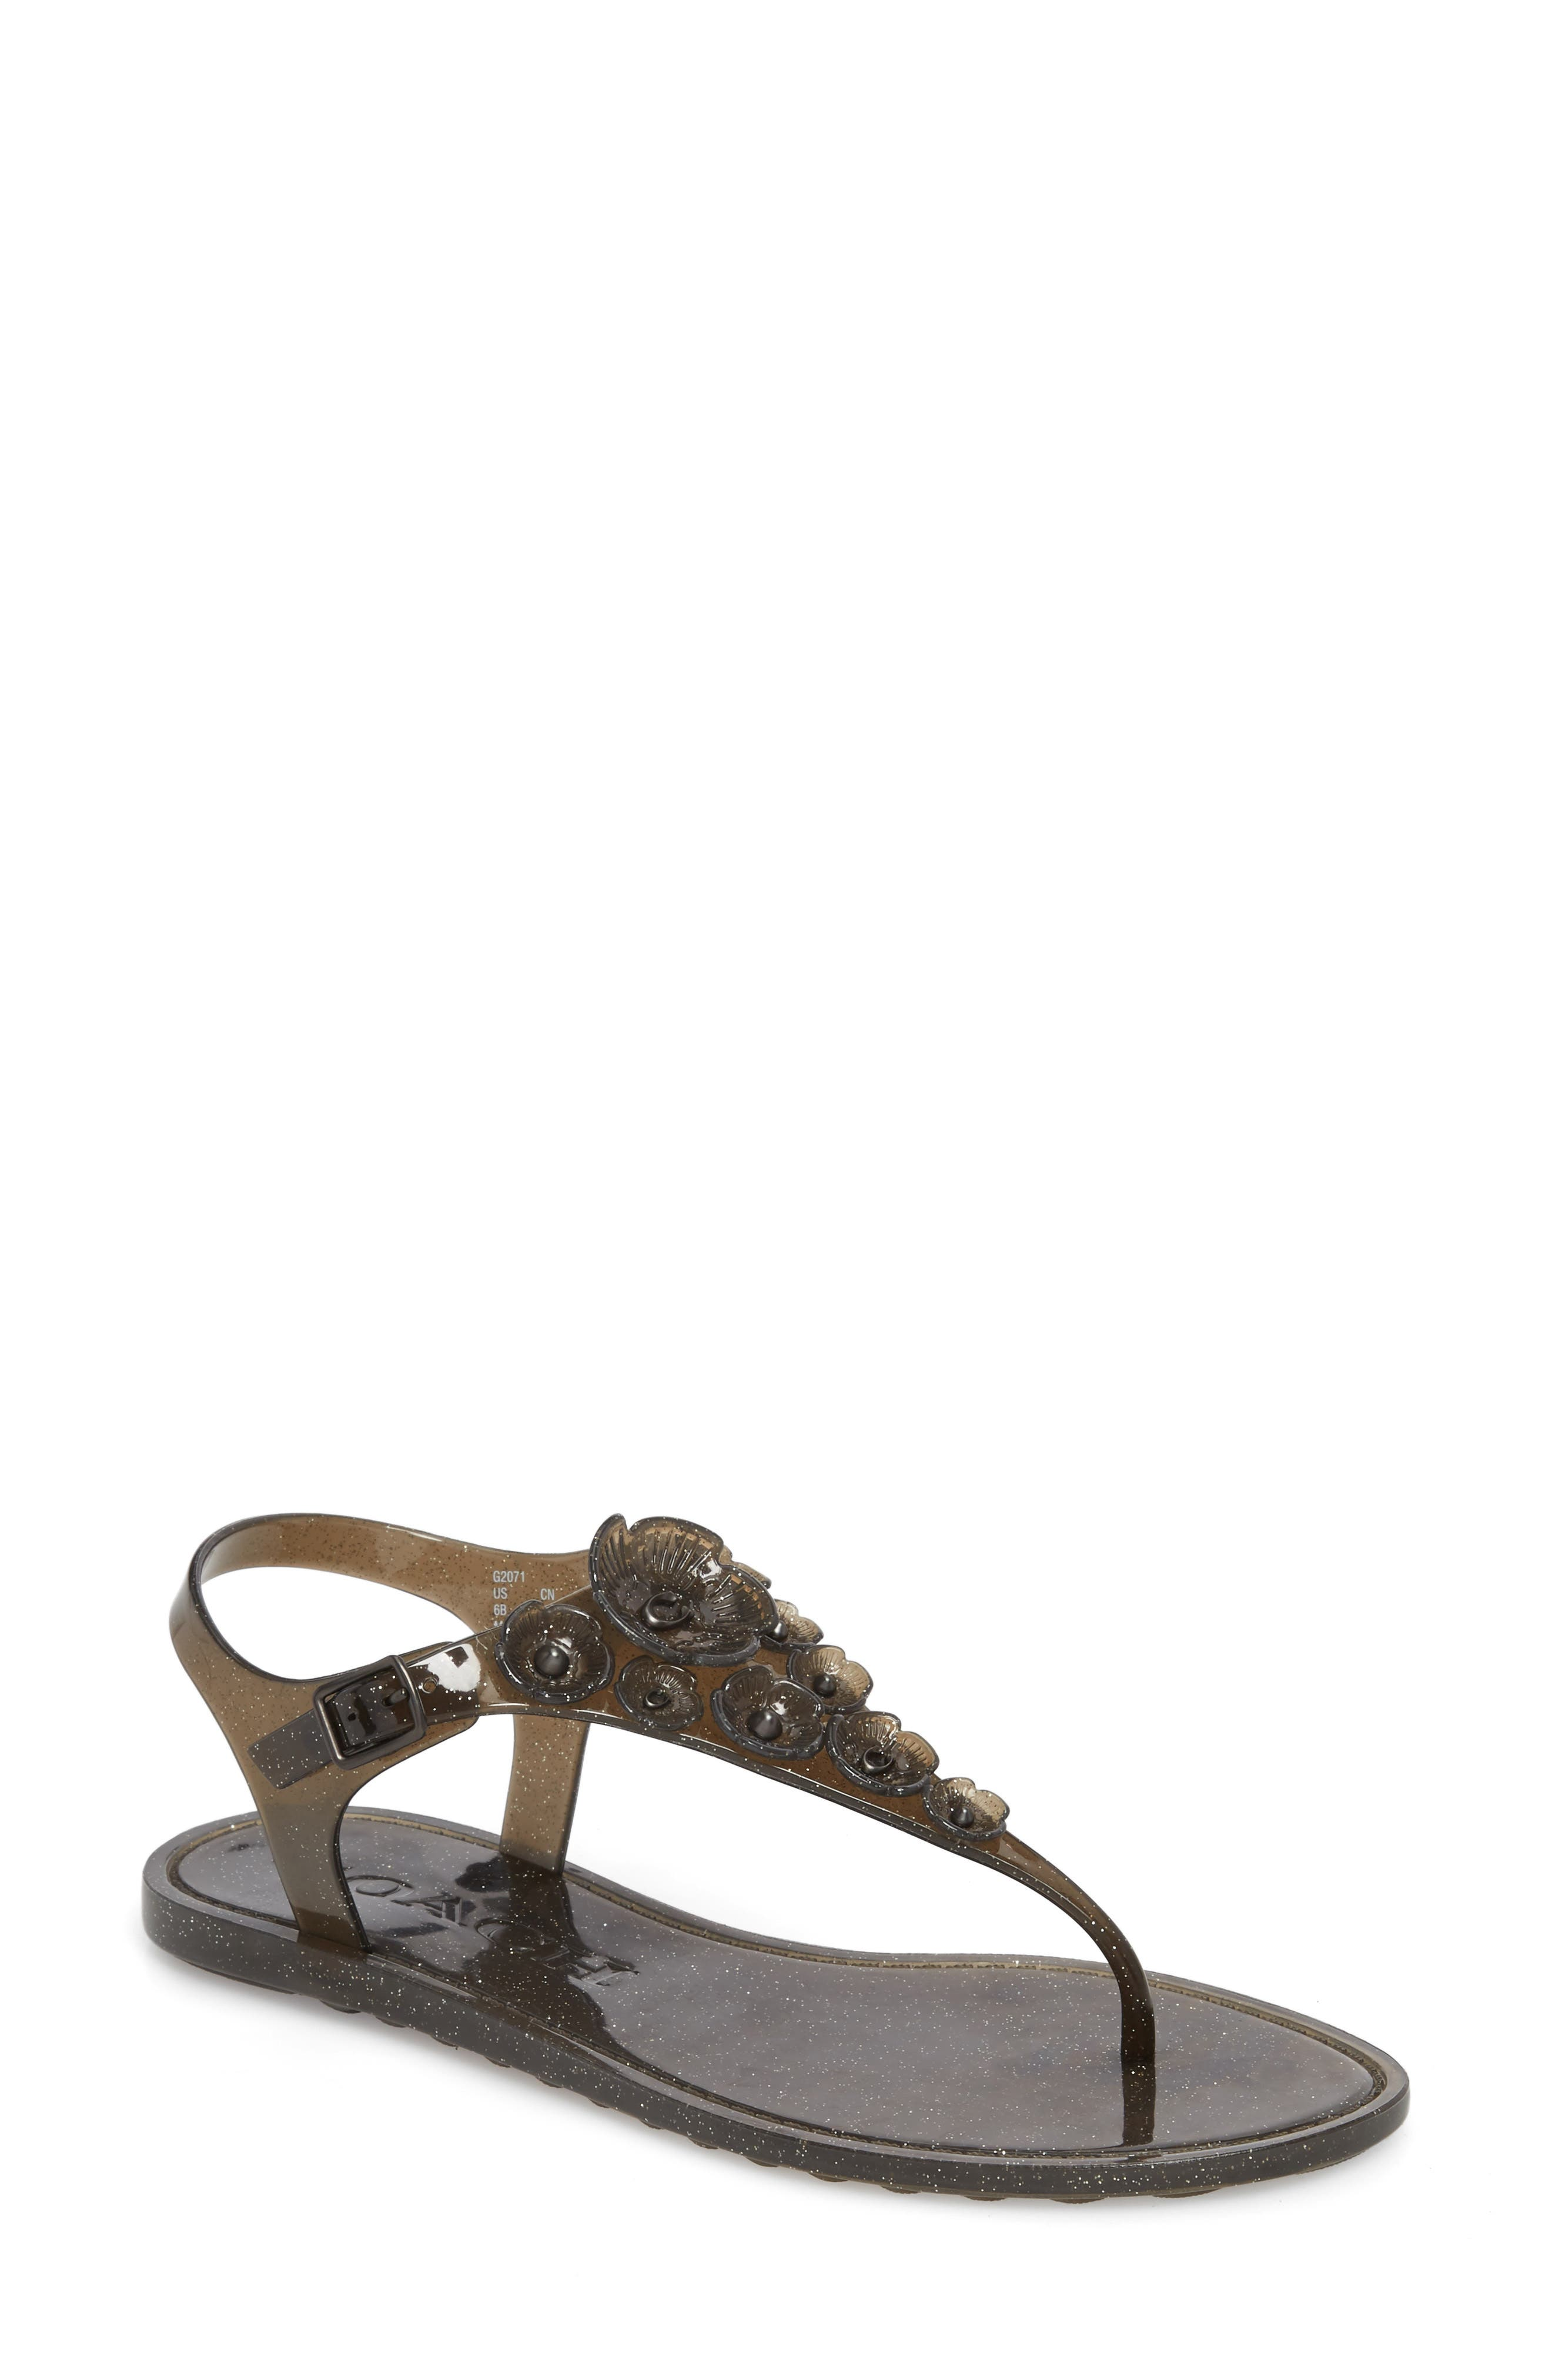 Tea Rose Sandal,                         Main,                         color, 001